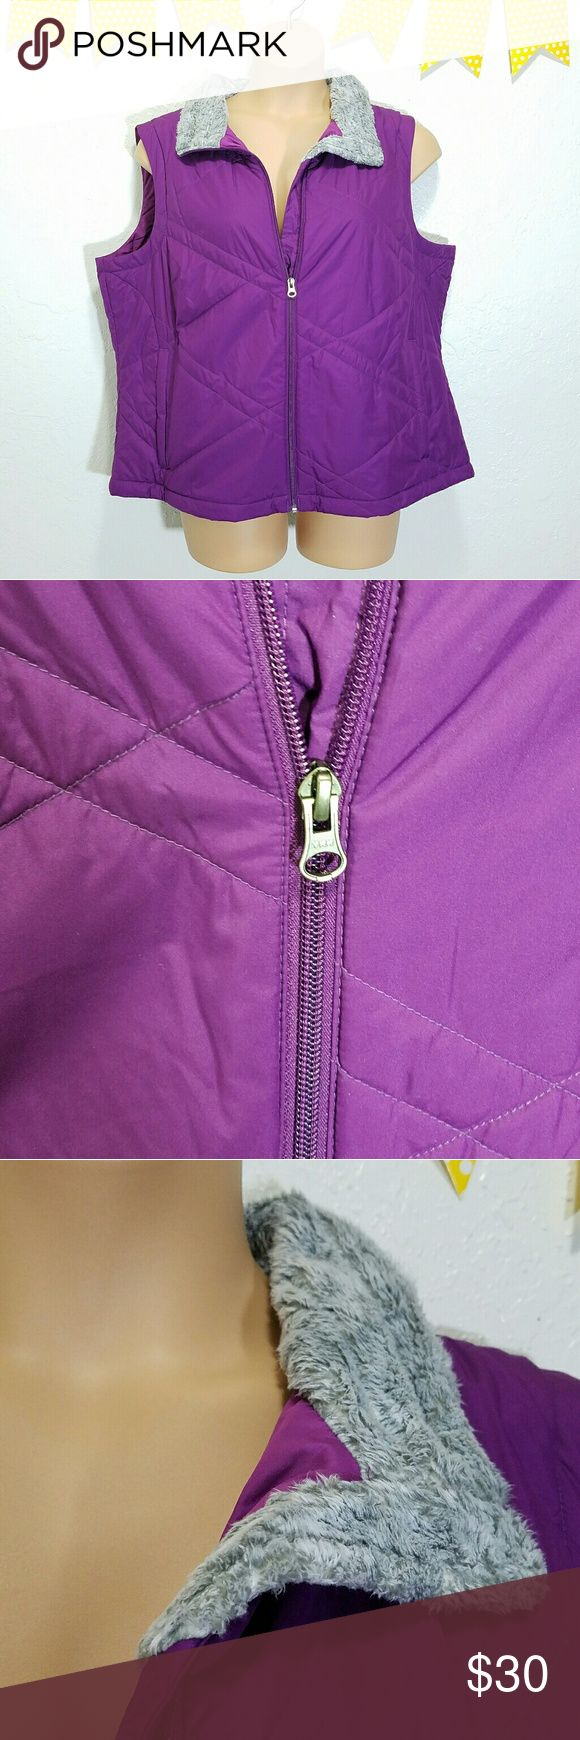 """Columbia 2x Purple Quilted Spring Vest C17 -Excellent used condition- faux fur shows some matting -Two zippered pockets -Faux-fur collar Please use measurements for best fit, all measurements are taken laying flat: -Bust 26"""" -Length shoulder to hem 25.5"""" -Width shoulder to shoulder 18.5""""  -100% Polyester -Deep purple body, gray faux-fur  (colors' appearance may vary on screen)  Questions? Just ask! Bundle to save!  Offers welcome  Happy Poshing! Columbia Jackets & Coats Vests"""